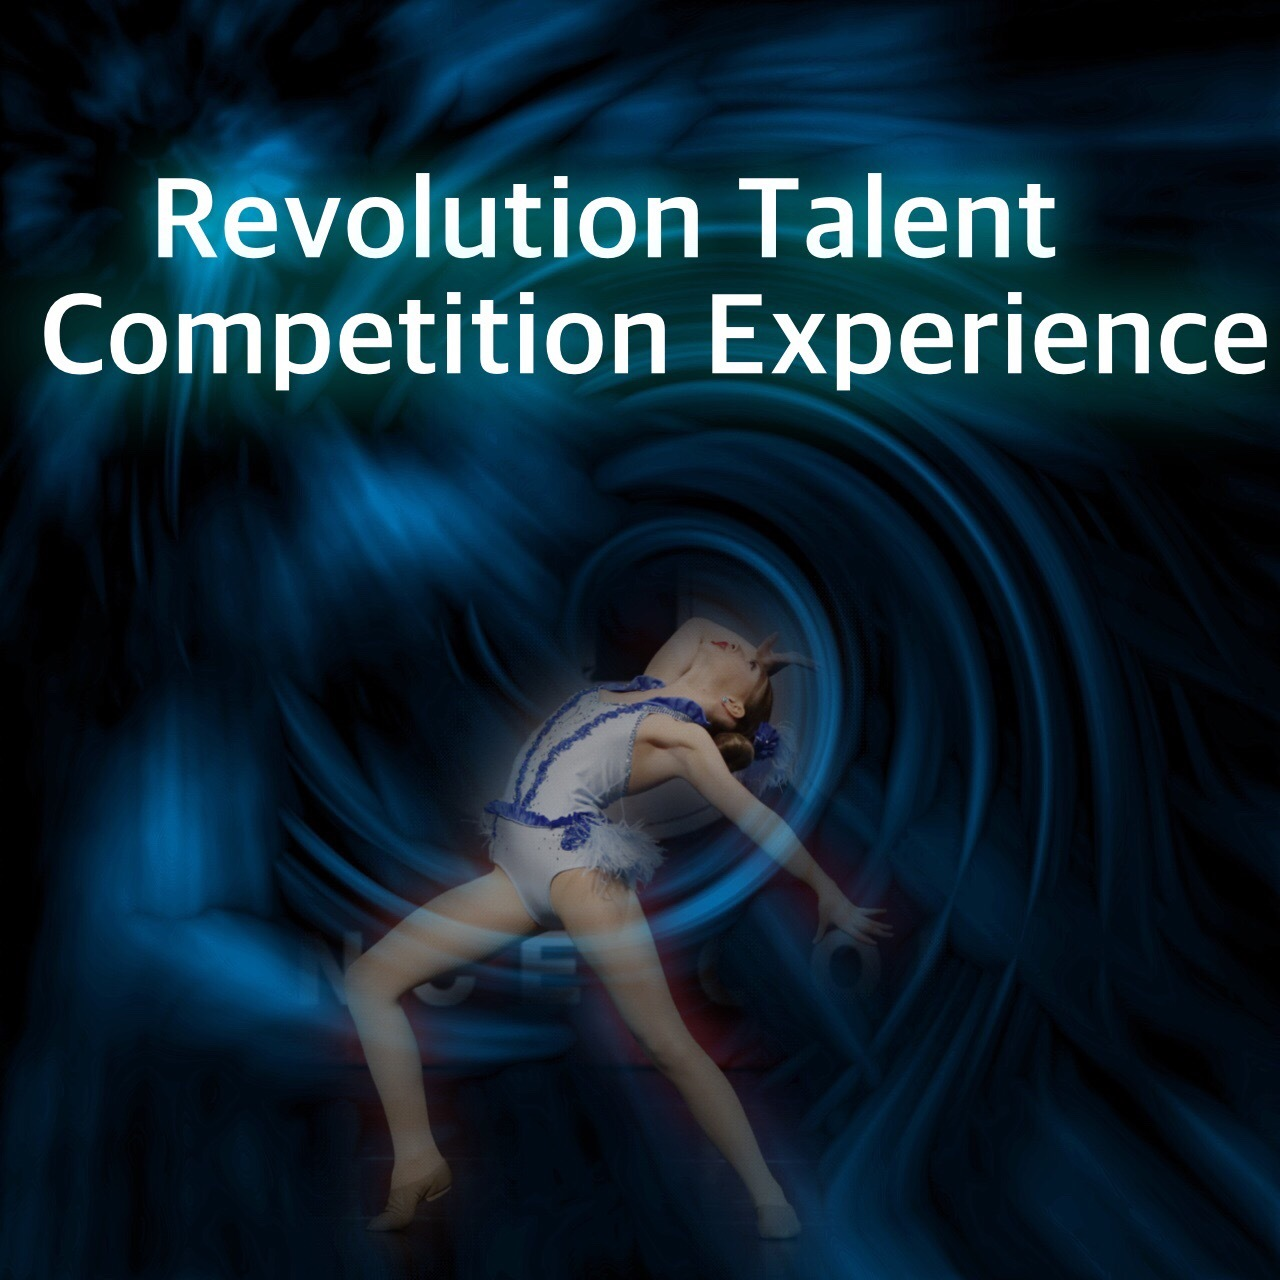 Revolution Talent Competition Experience